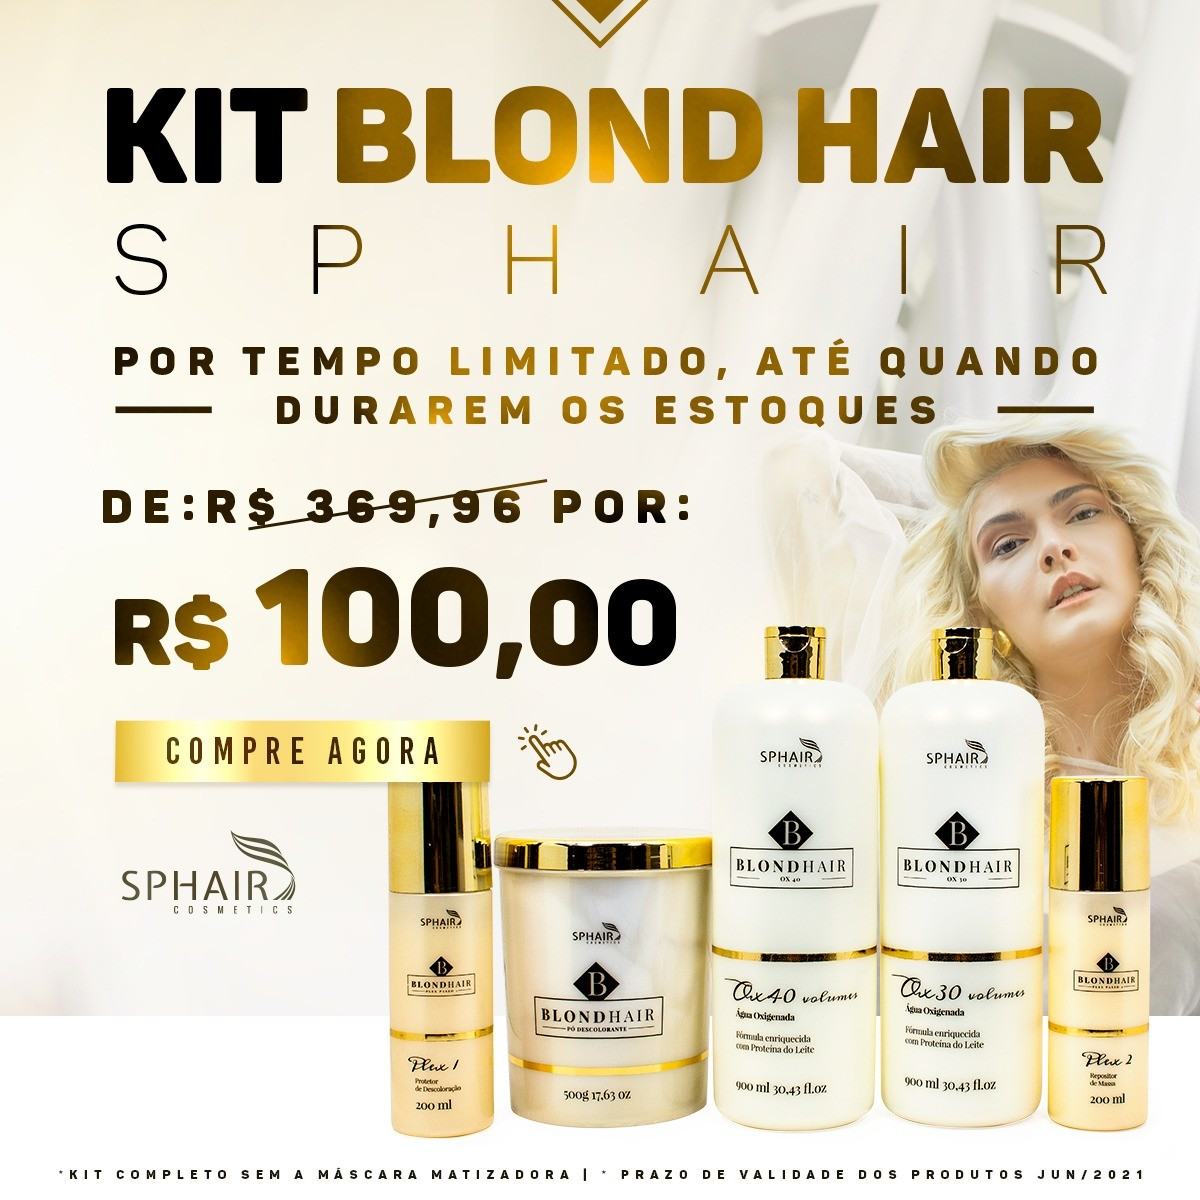 Kit Blond Hair - De R$ 369,96 por R$ 100,00